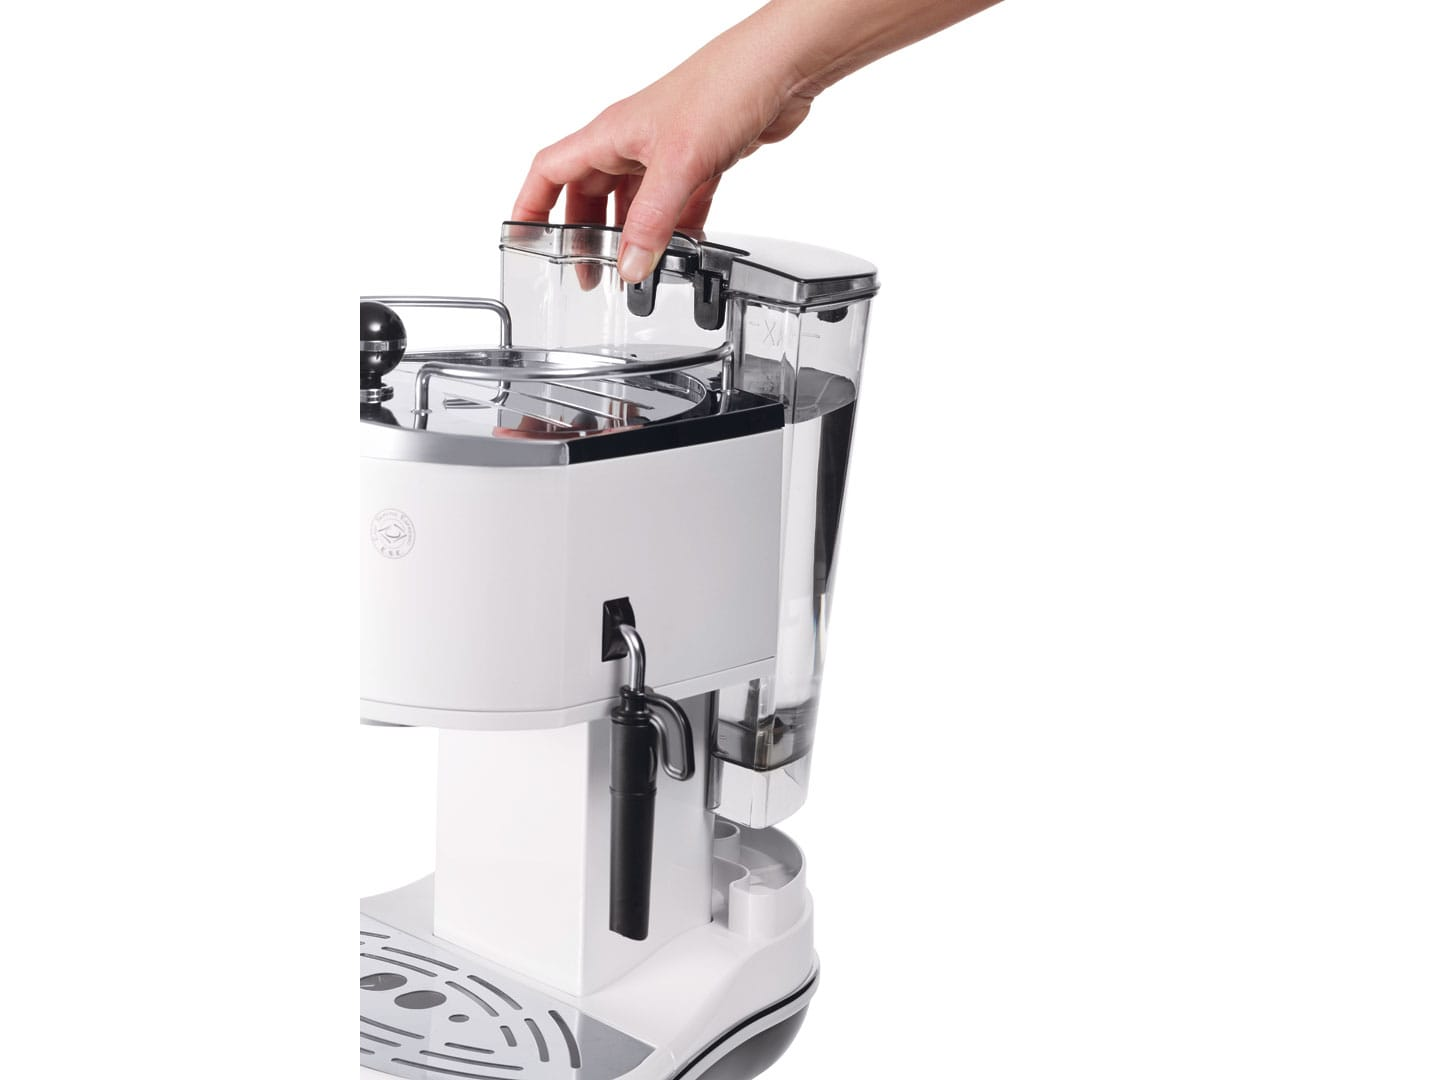 Icona Pump Espresso - White small coffee machine on kitchen benchtop